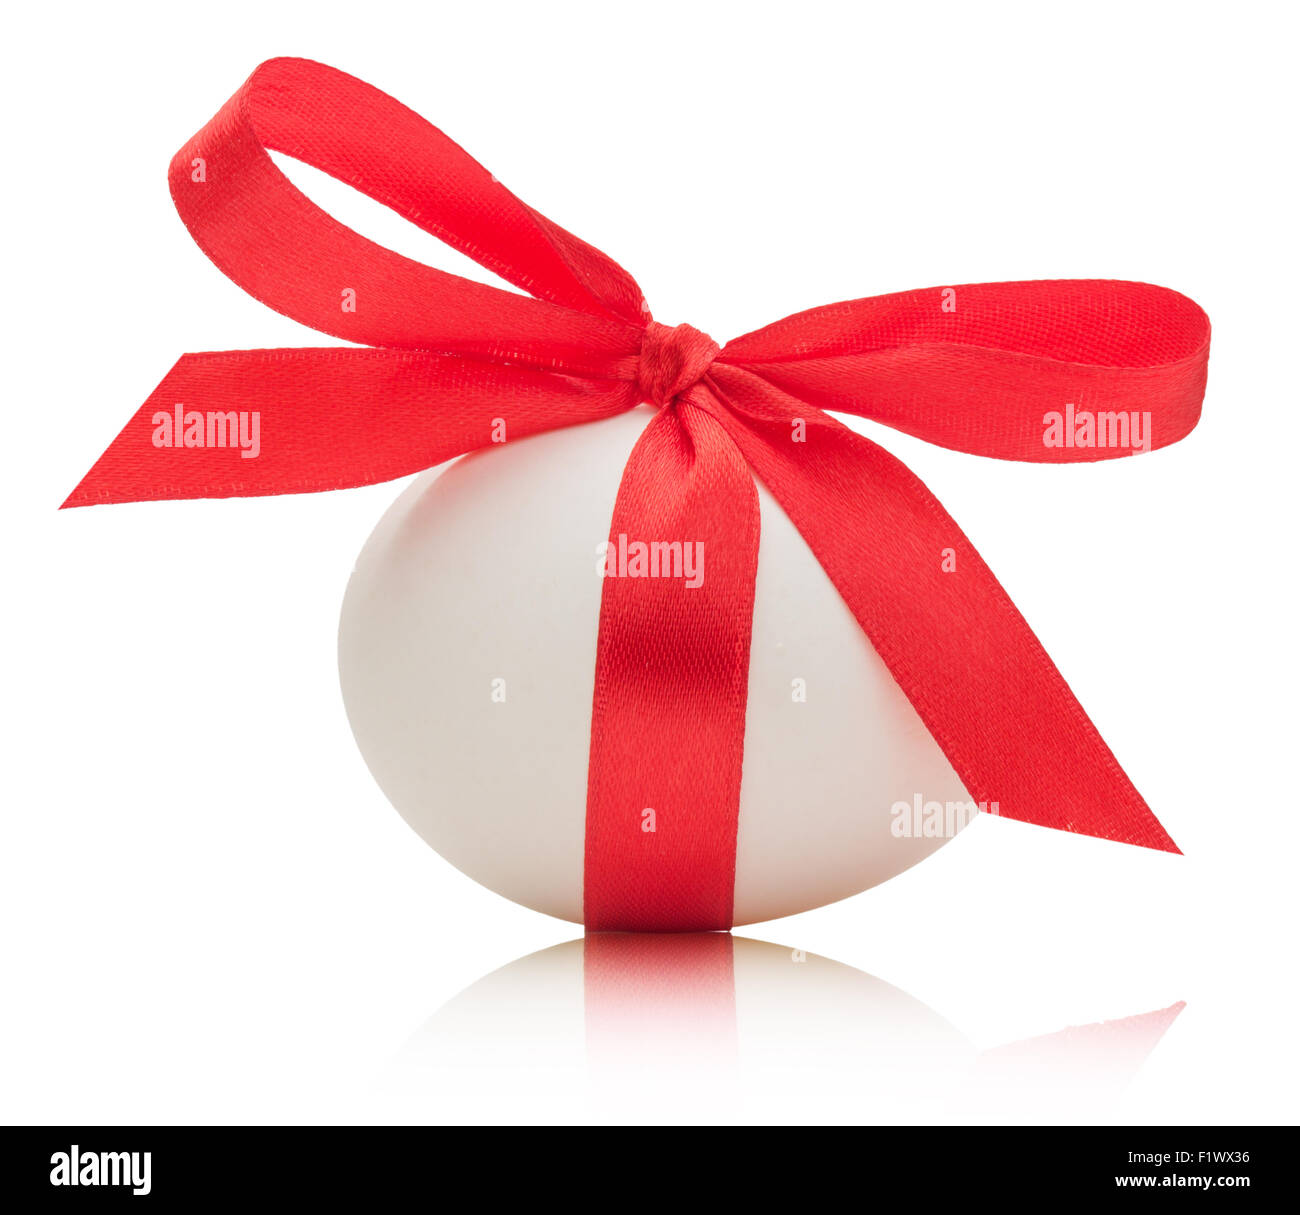 Easter egg with festive red bow isolated on white background. - Stock Image